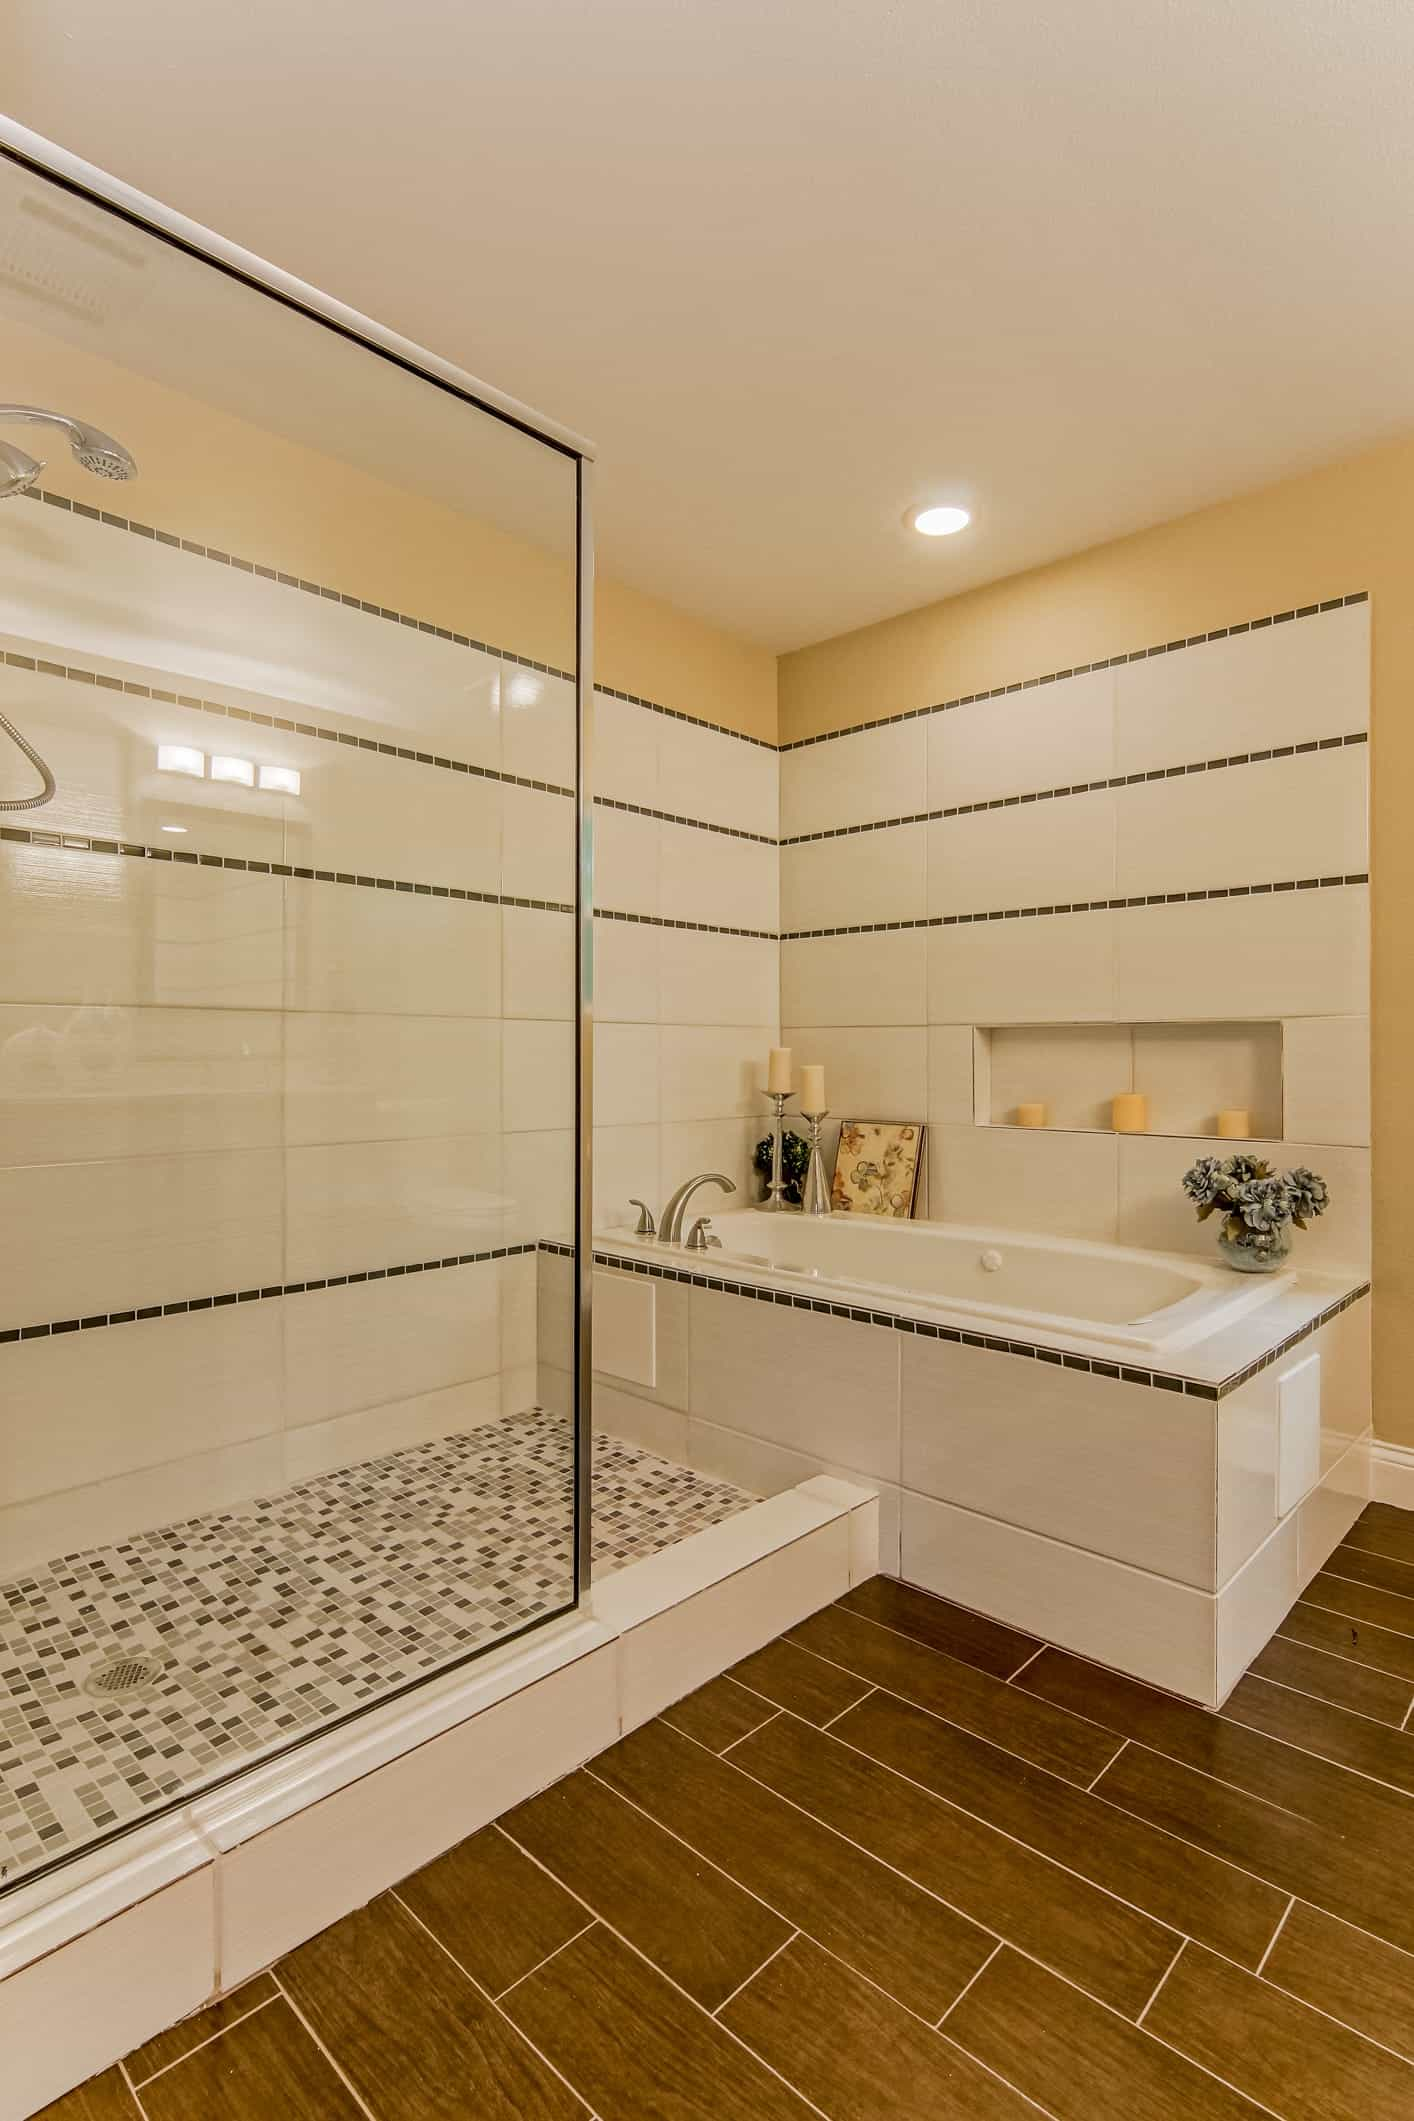 Contemporary Bathroom And Shower Combination With Glass Shower Partition (View 5 of 16)